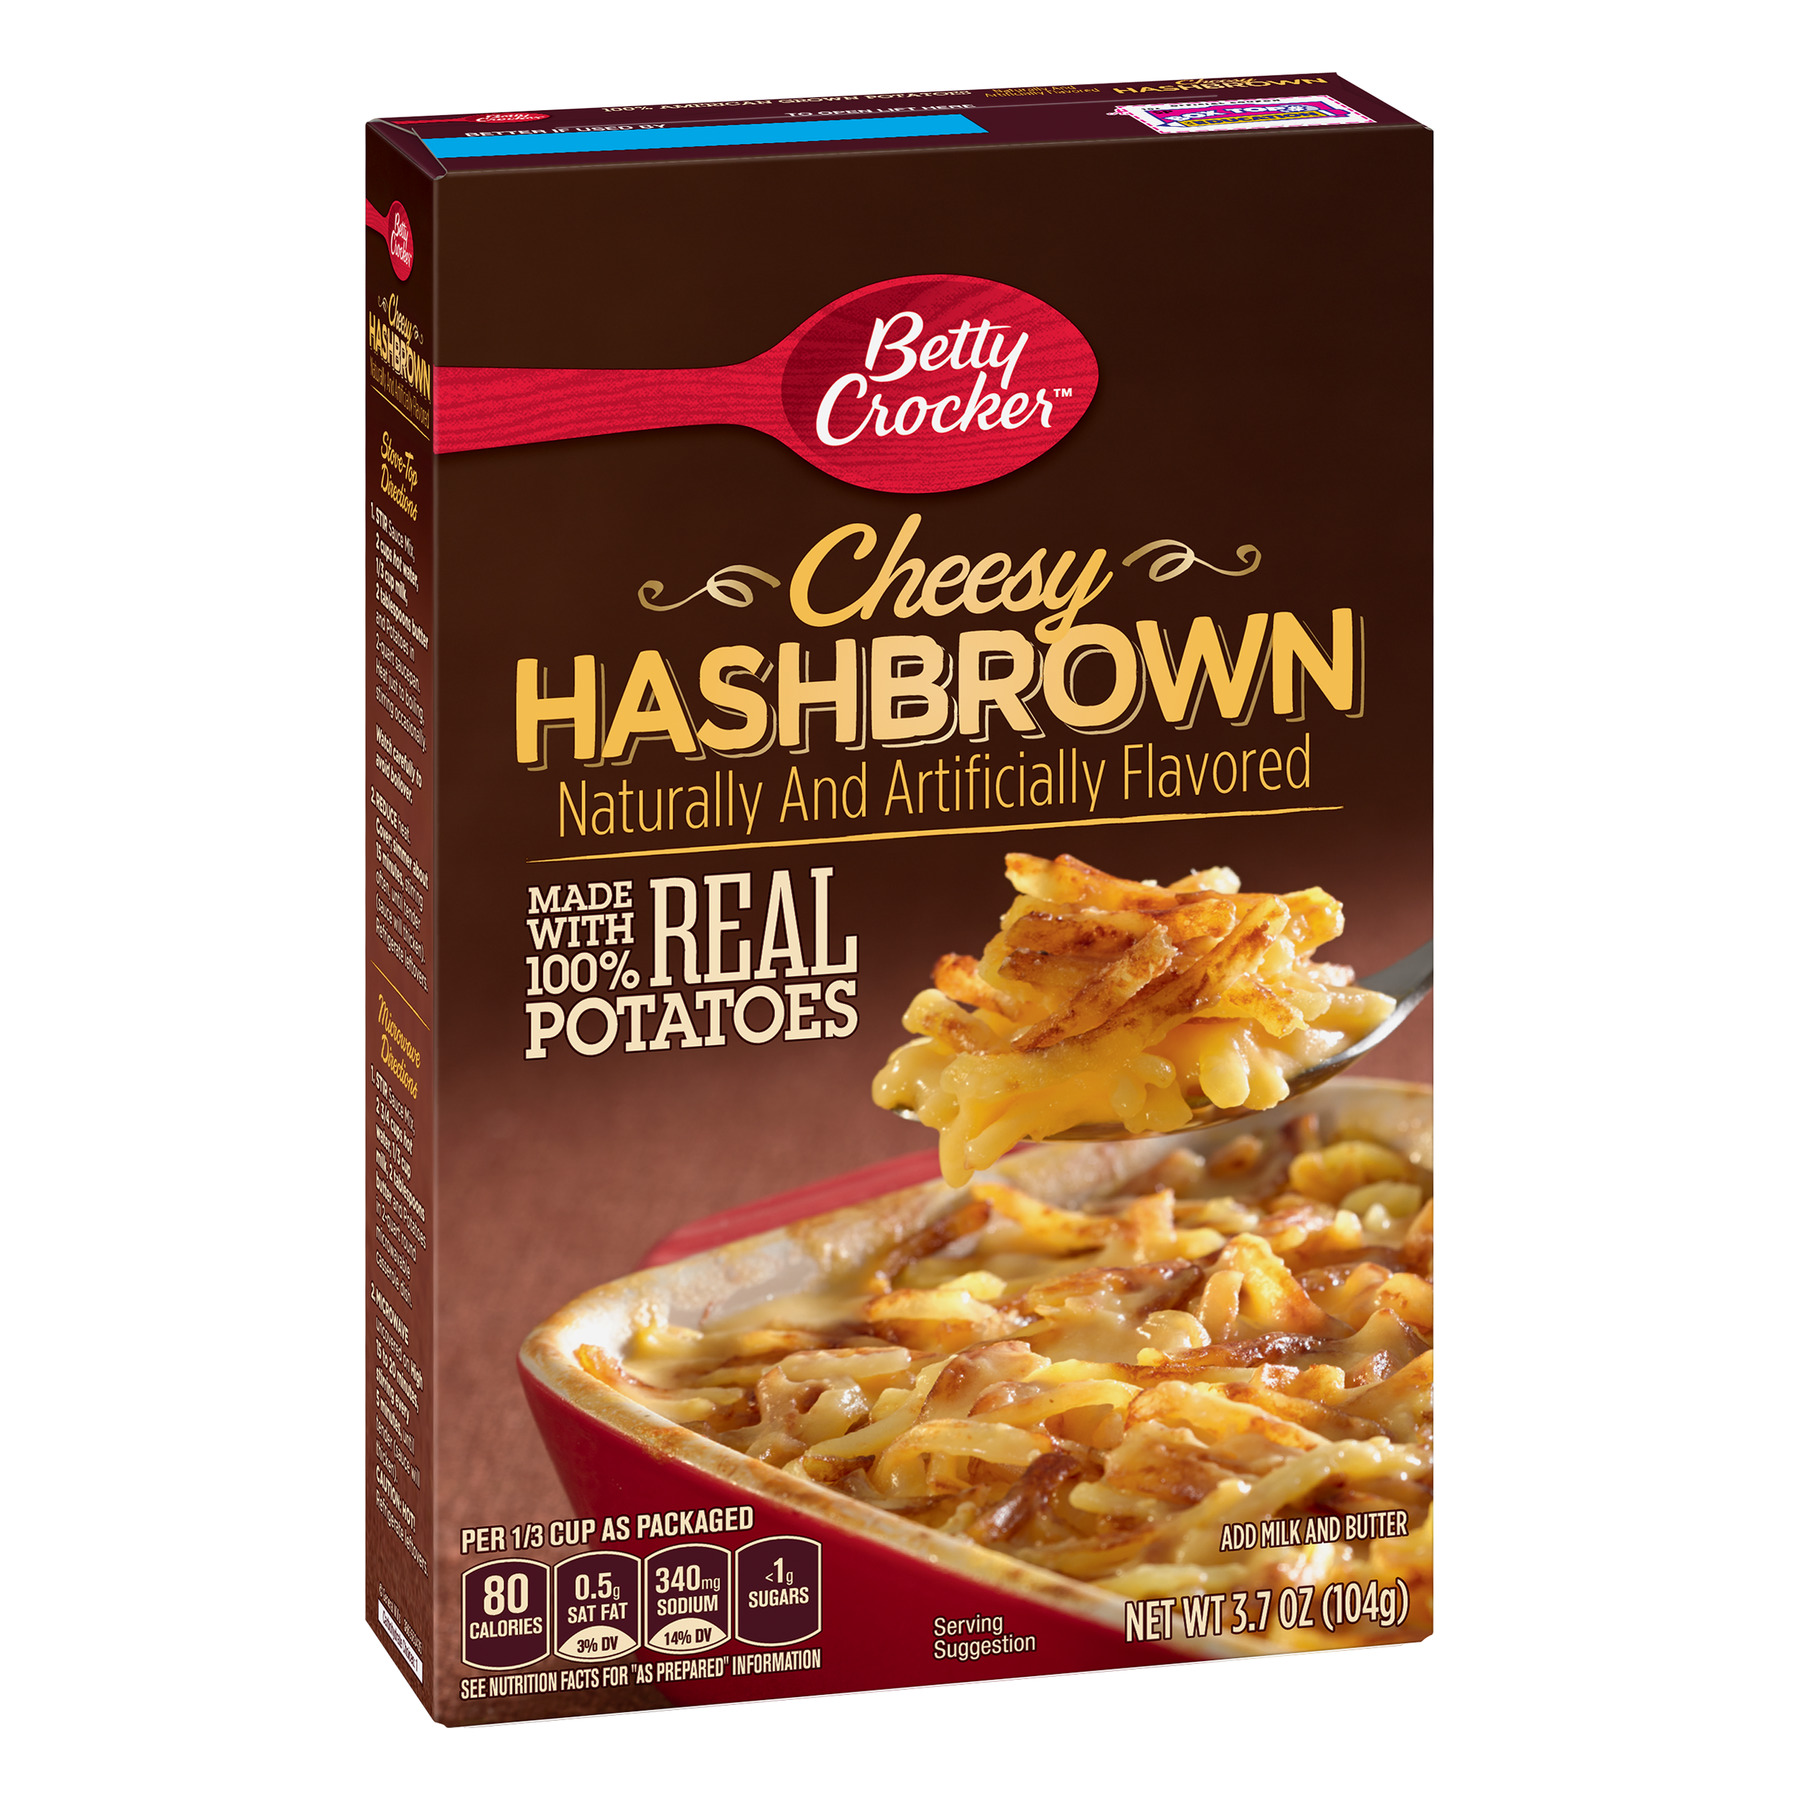 Betty Crocker Cheesy Hash brown Potatoes, 3.7 oz Box